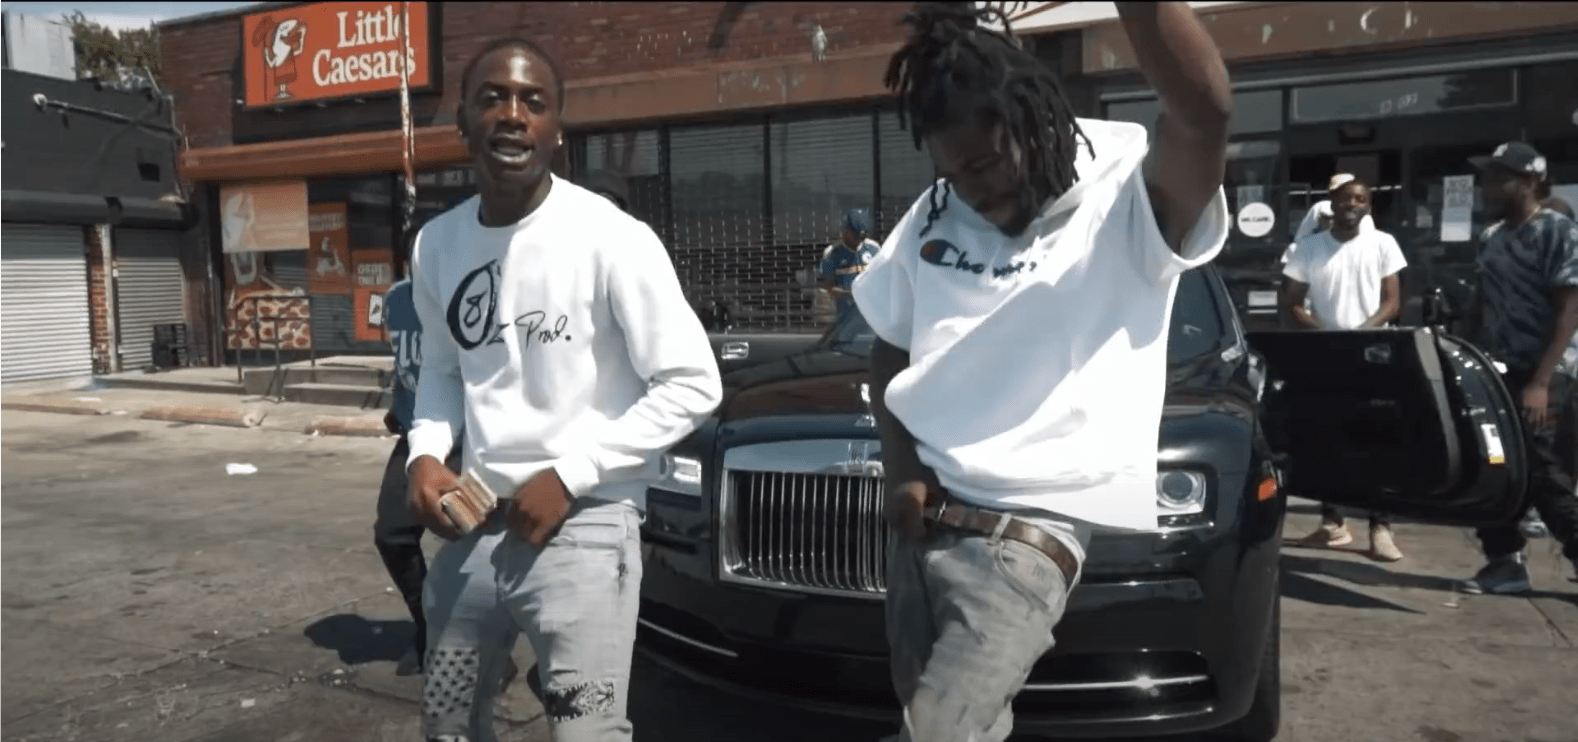 Spazz Floss Releases 'Big Body' Music Video